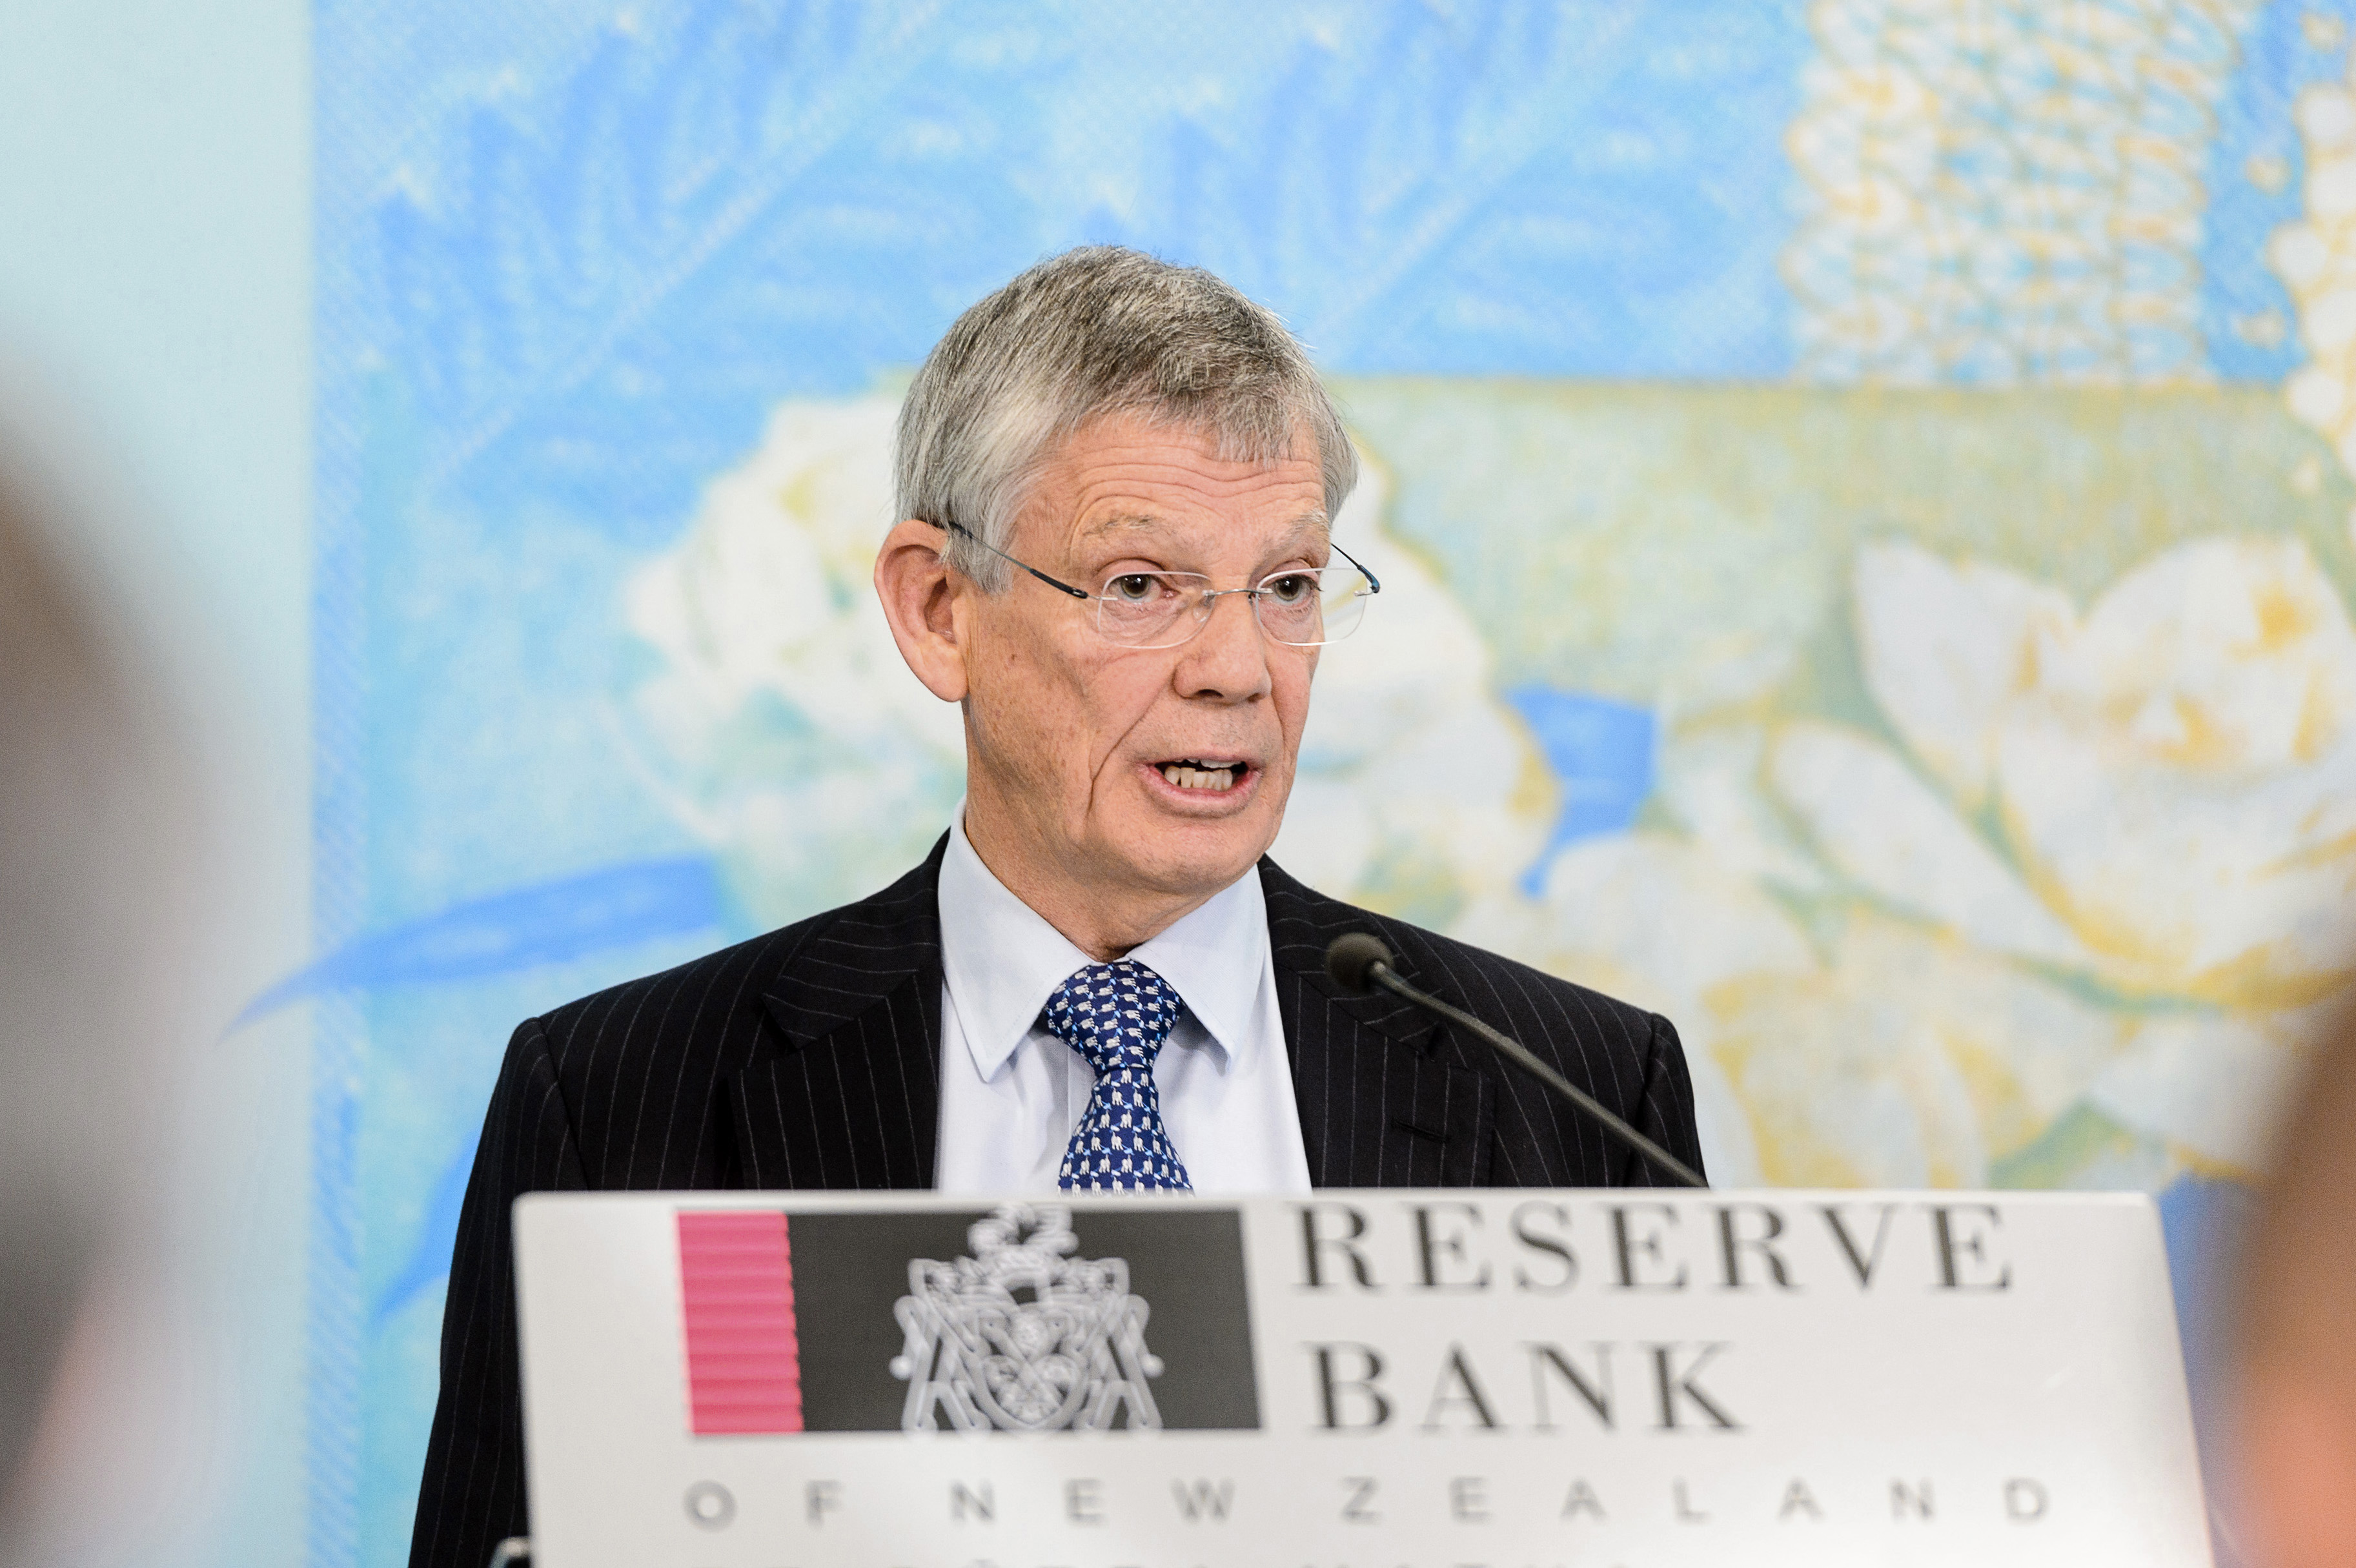 Reserve Bank of New Zealand Governor Graeme Wheeler News Conference